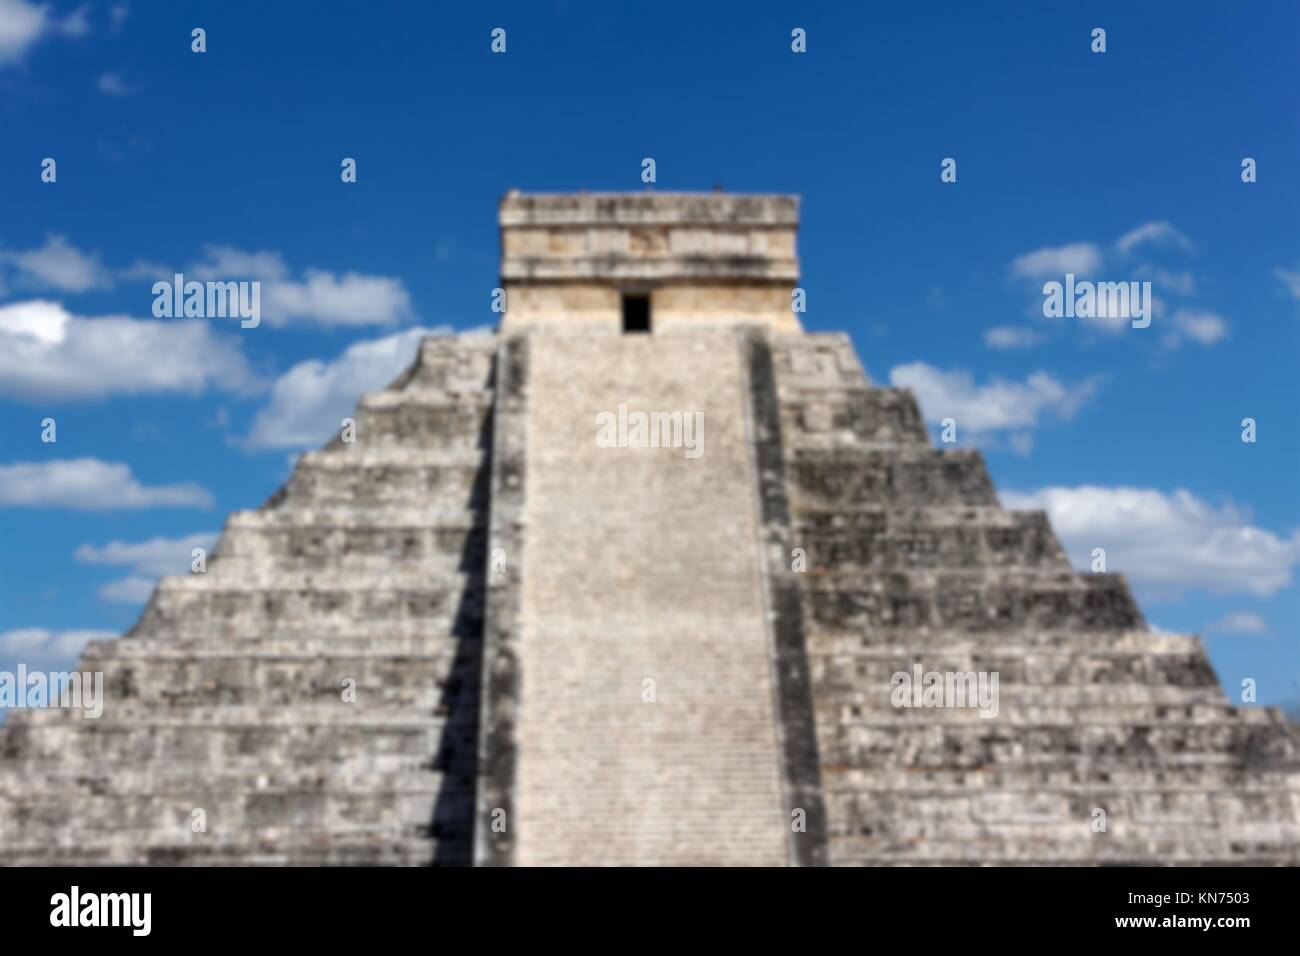 Blurred background of Mayan temple Pyramid at Chichen Itza, Yucatan, Mexico. - Stock Image